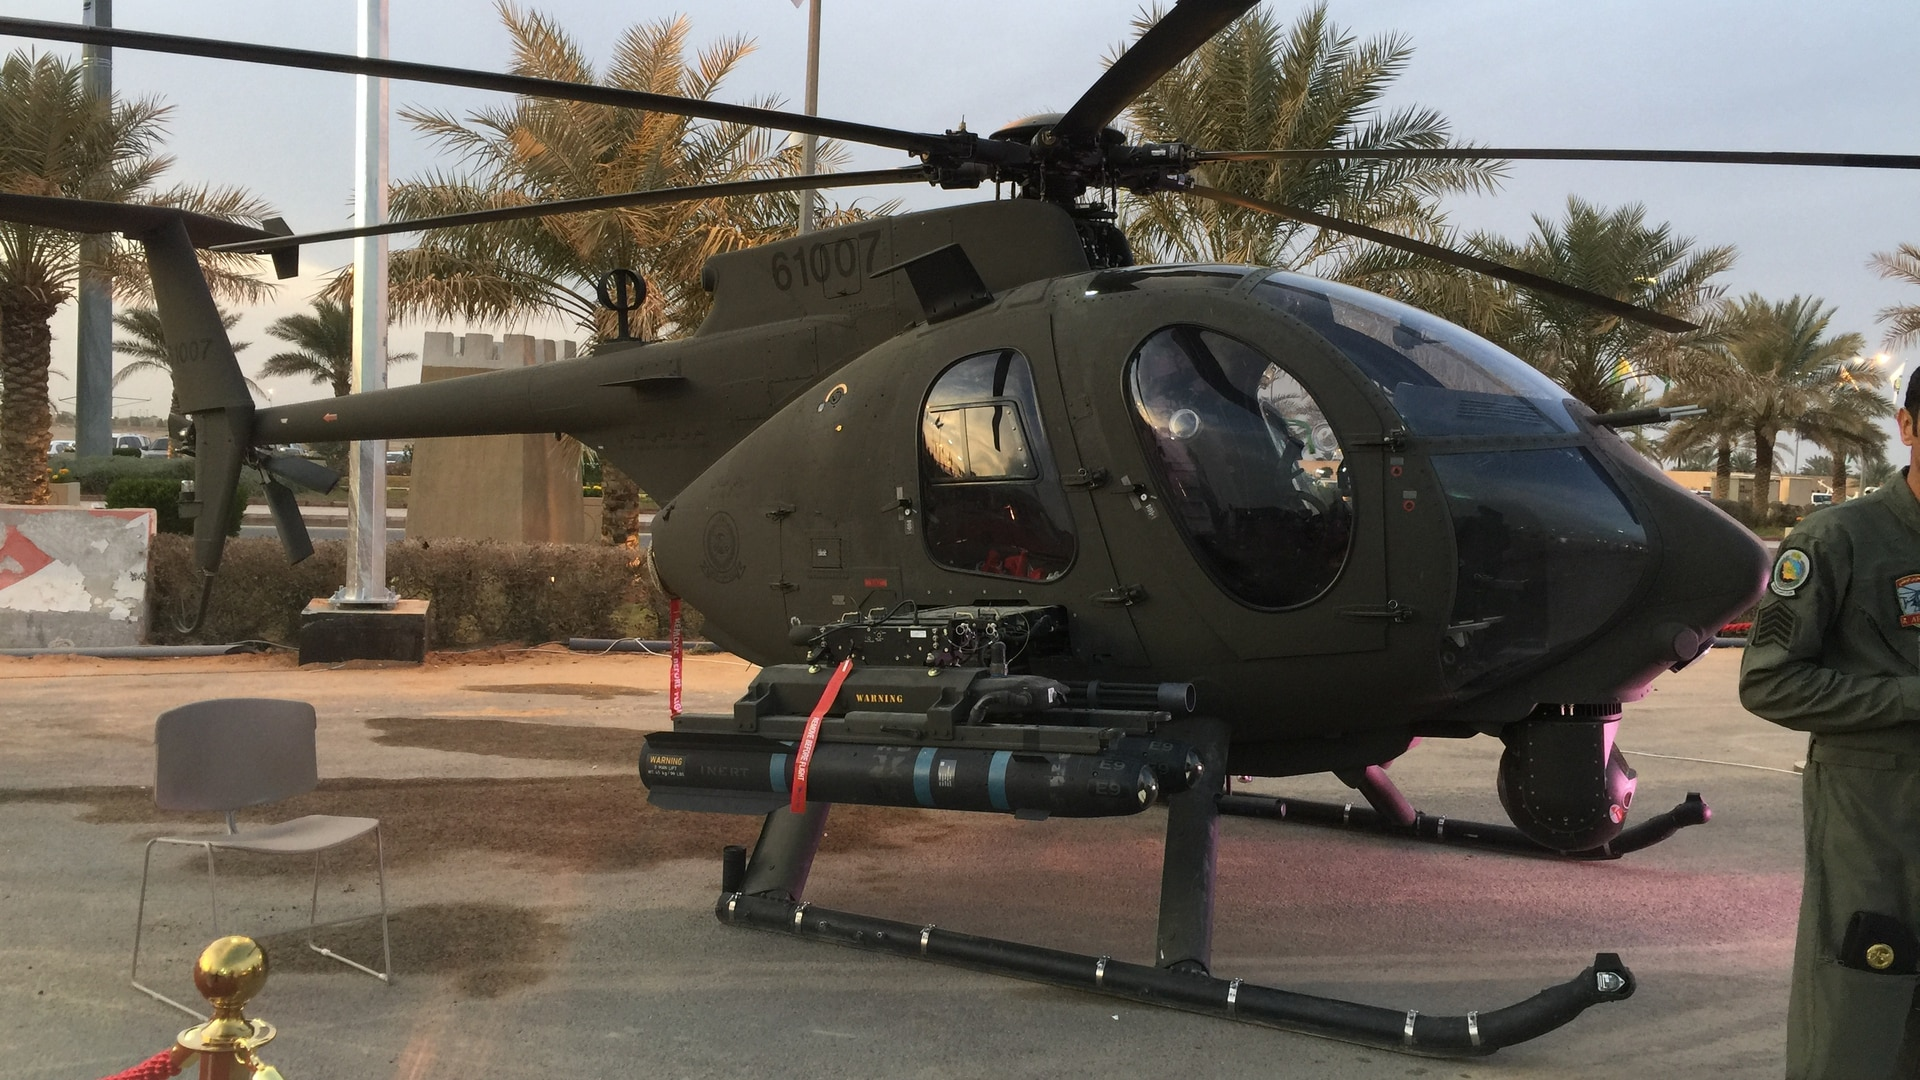 A Saudi Arabian National Guard AH-6i light attack helicopter sits on display Feb. 10, 2018. (Wikimedia)